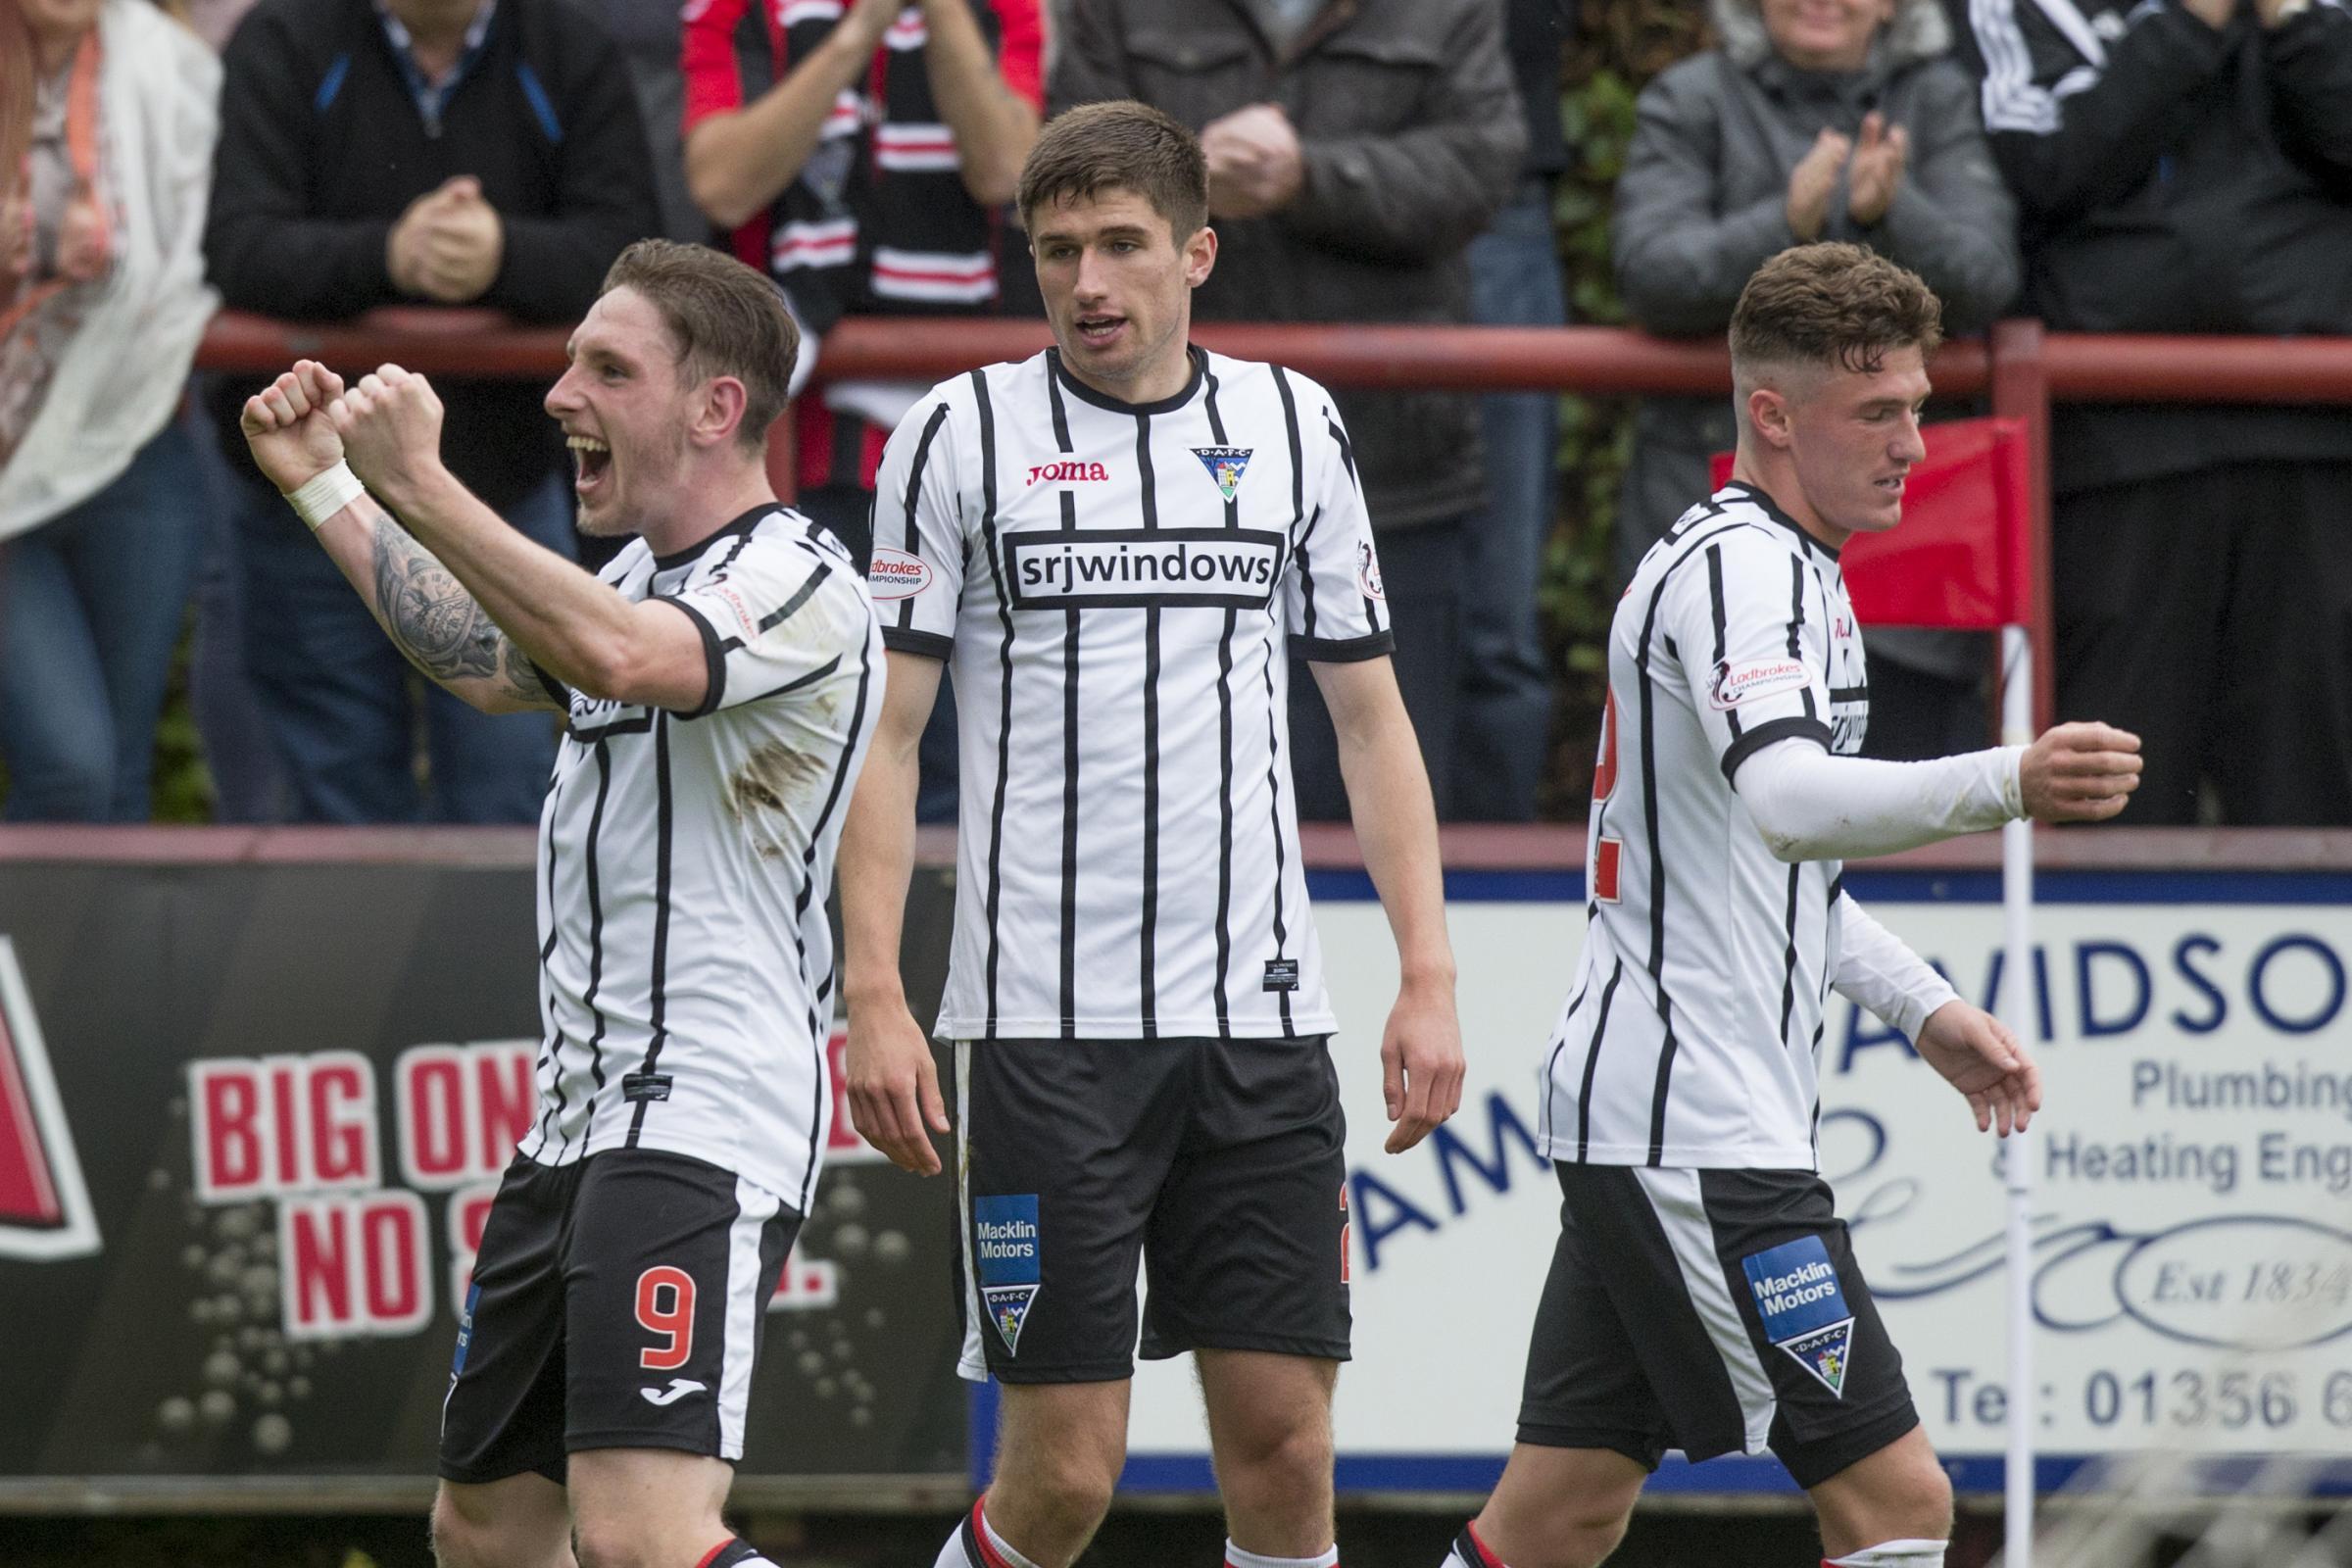 The Pars players celebrate on Saturday. Photo: Craig Brown.